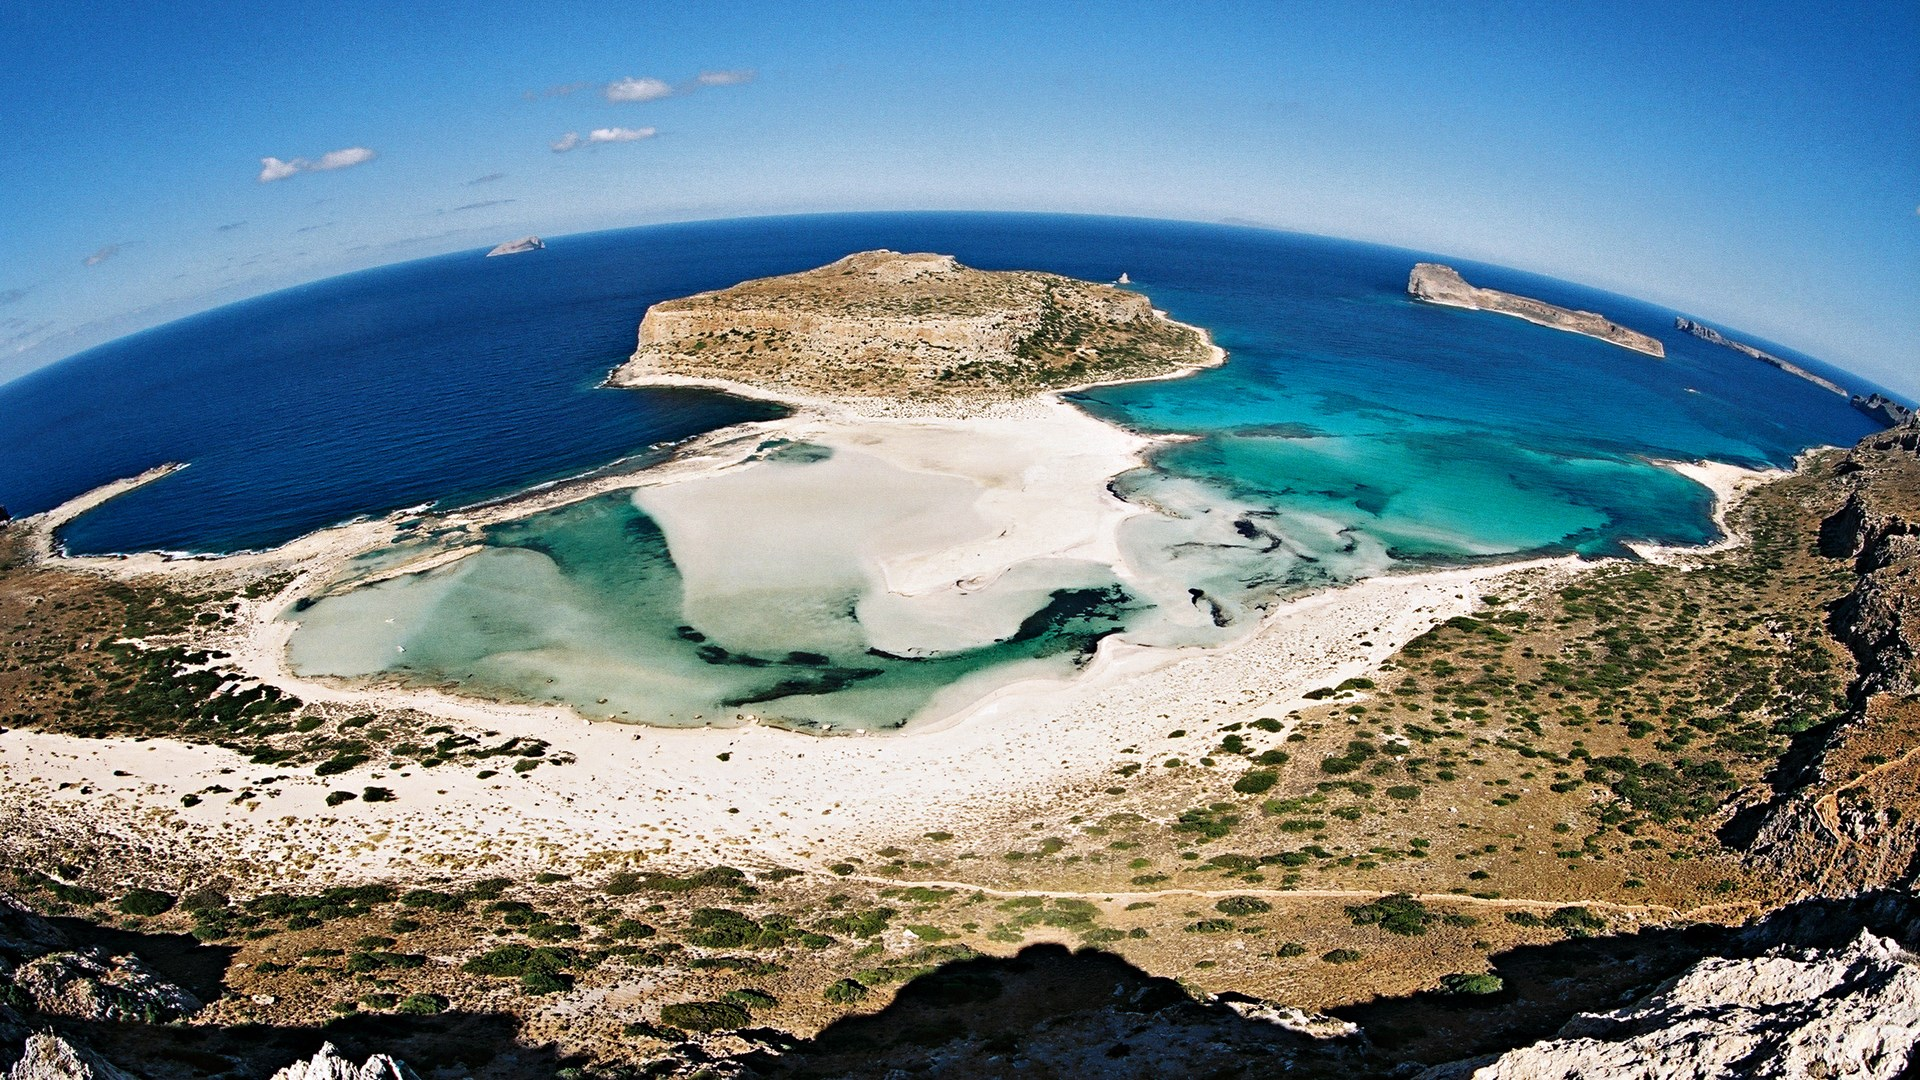 Balos Beach & Lagoon, Chania – Crete | 27 Oct 2014 | Alargo